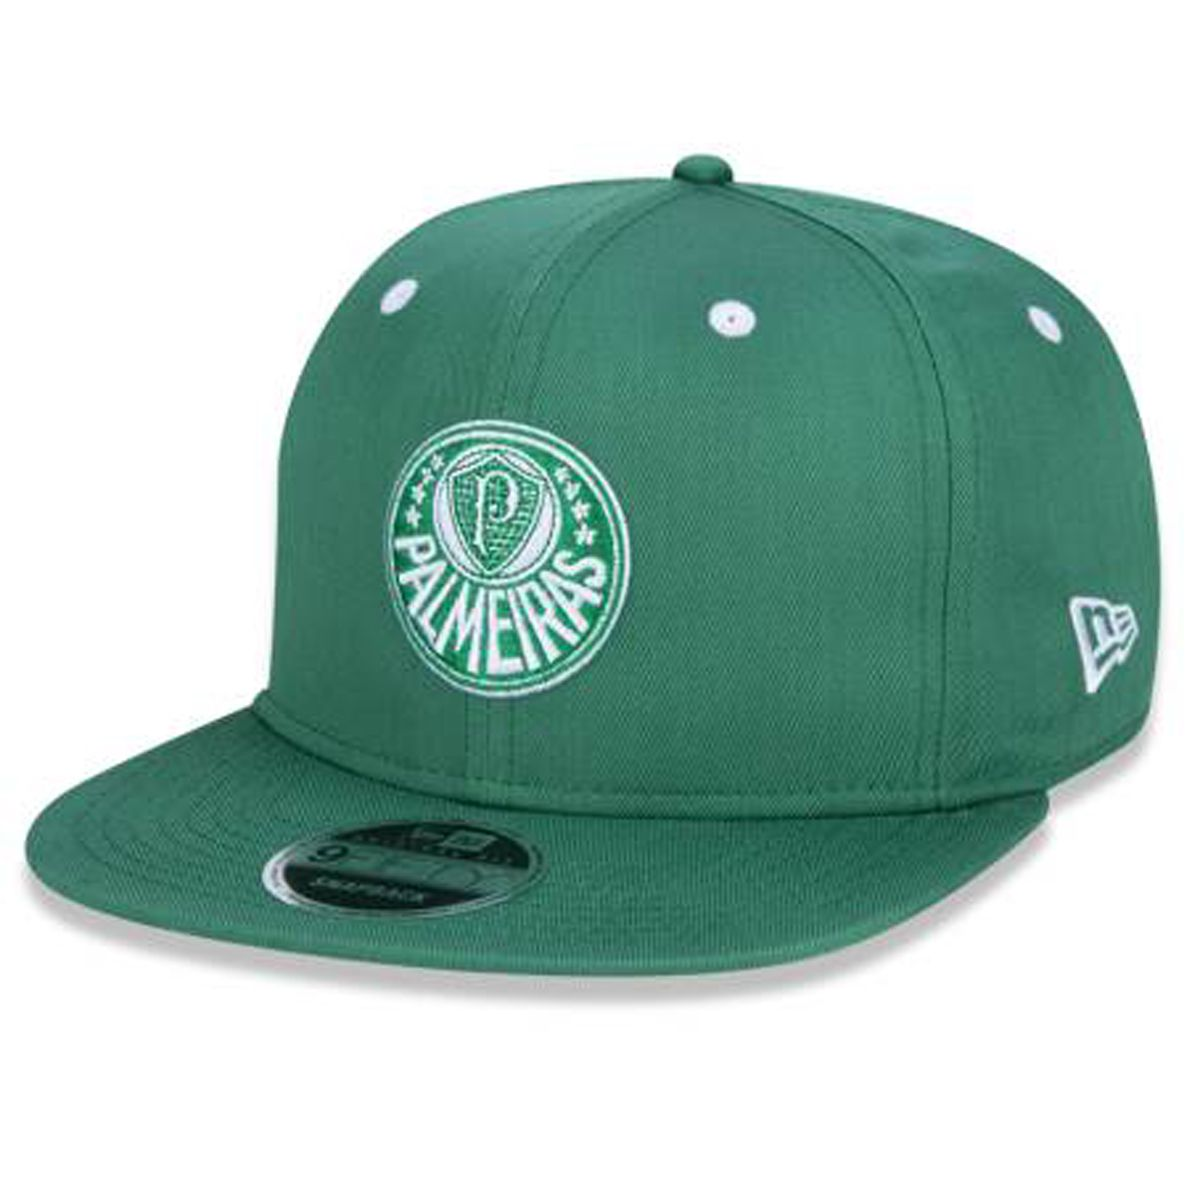 Boné do Palmeiras New Era 9Fifty NEV20BON093